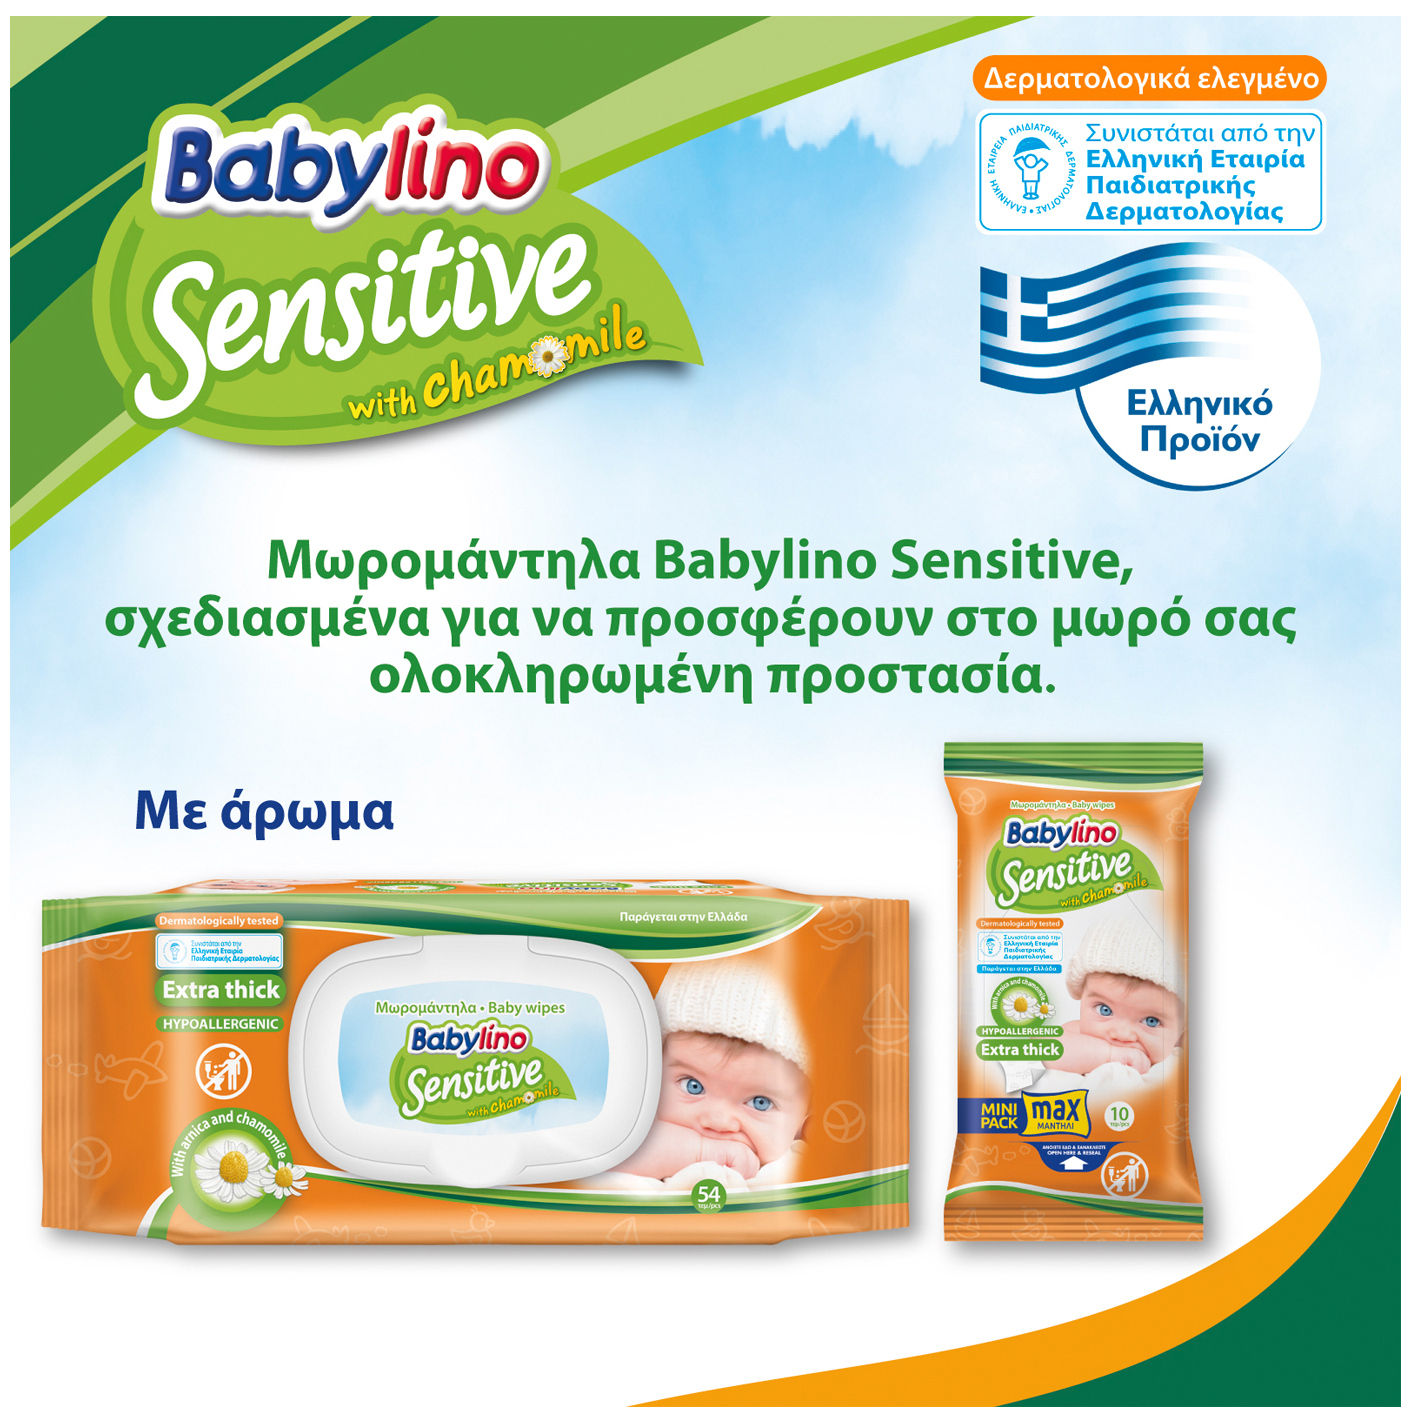 babylino_sensitive_wipes_scent_1.jpg